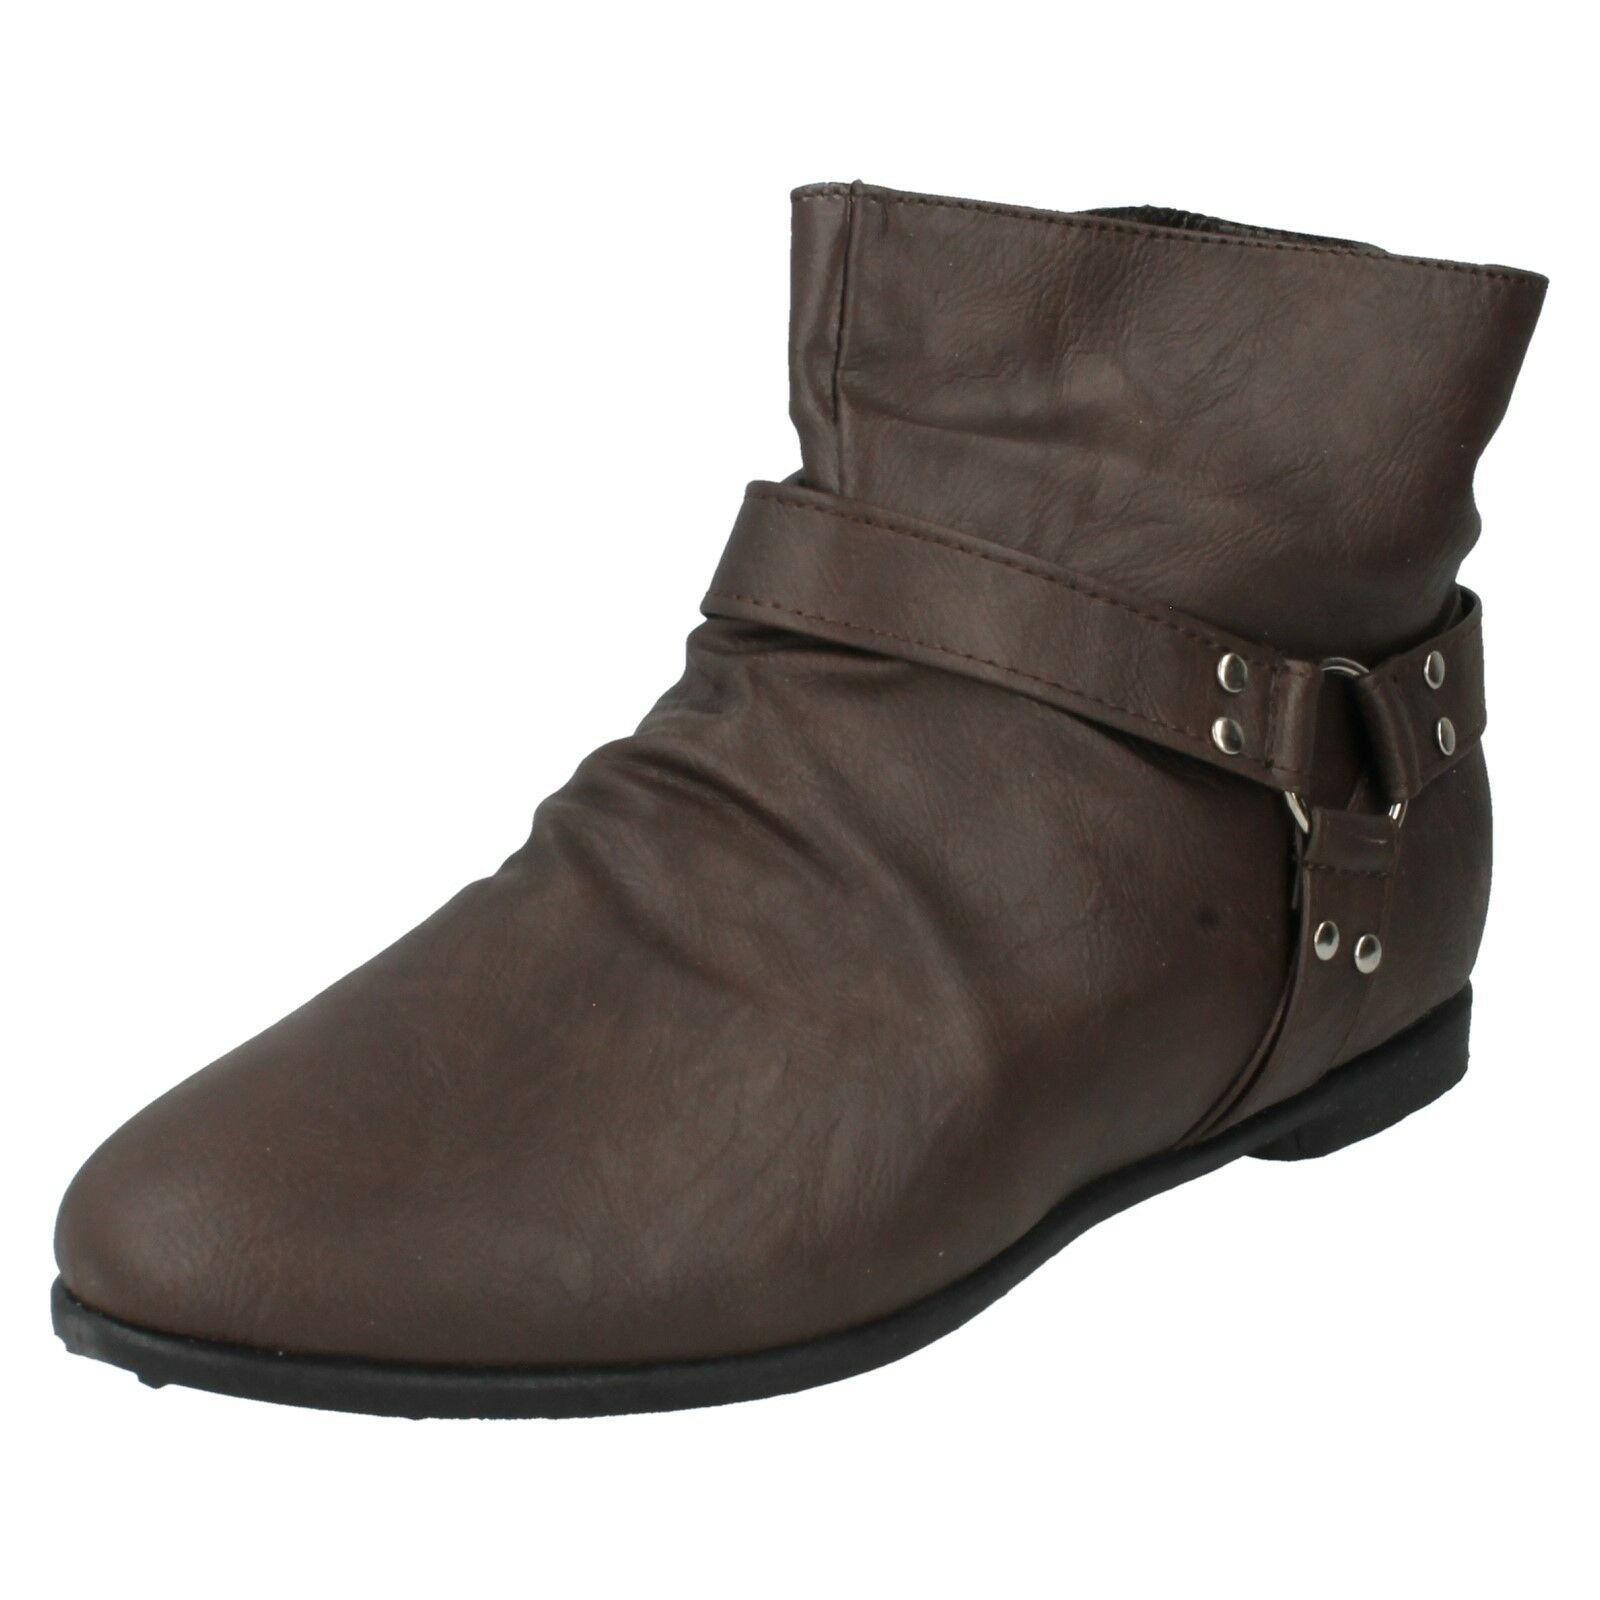 SPOT ON LADIES FLAT ZIP UP CASUAL WINTER WOMENS ANKLE BOOTS F4346